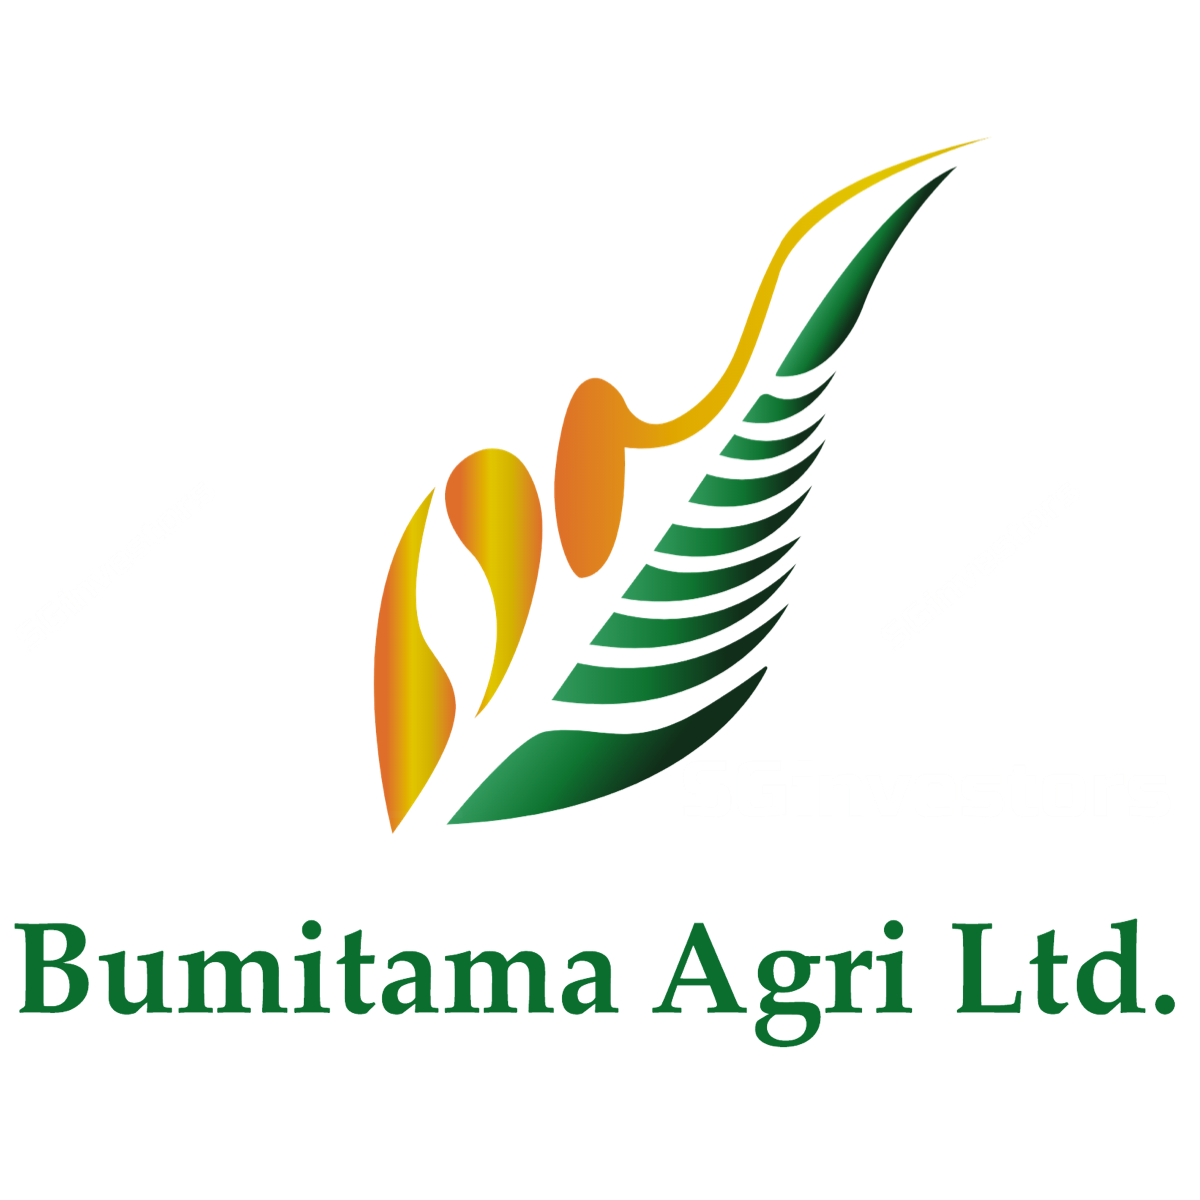 Bumitama Agri (BAL SP) - Maybank Kim Eng 2017-08-15: Astounding 2Q Output Growth, Raising Growth Guidance